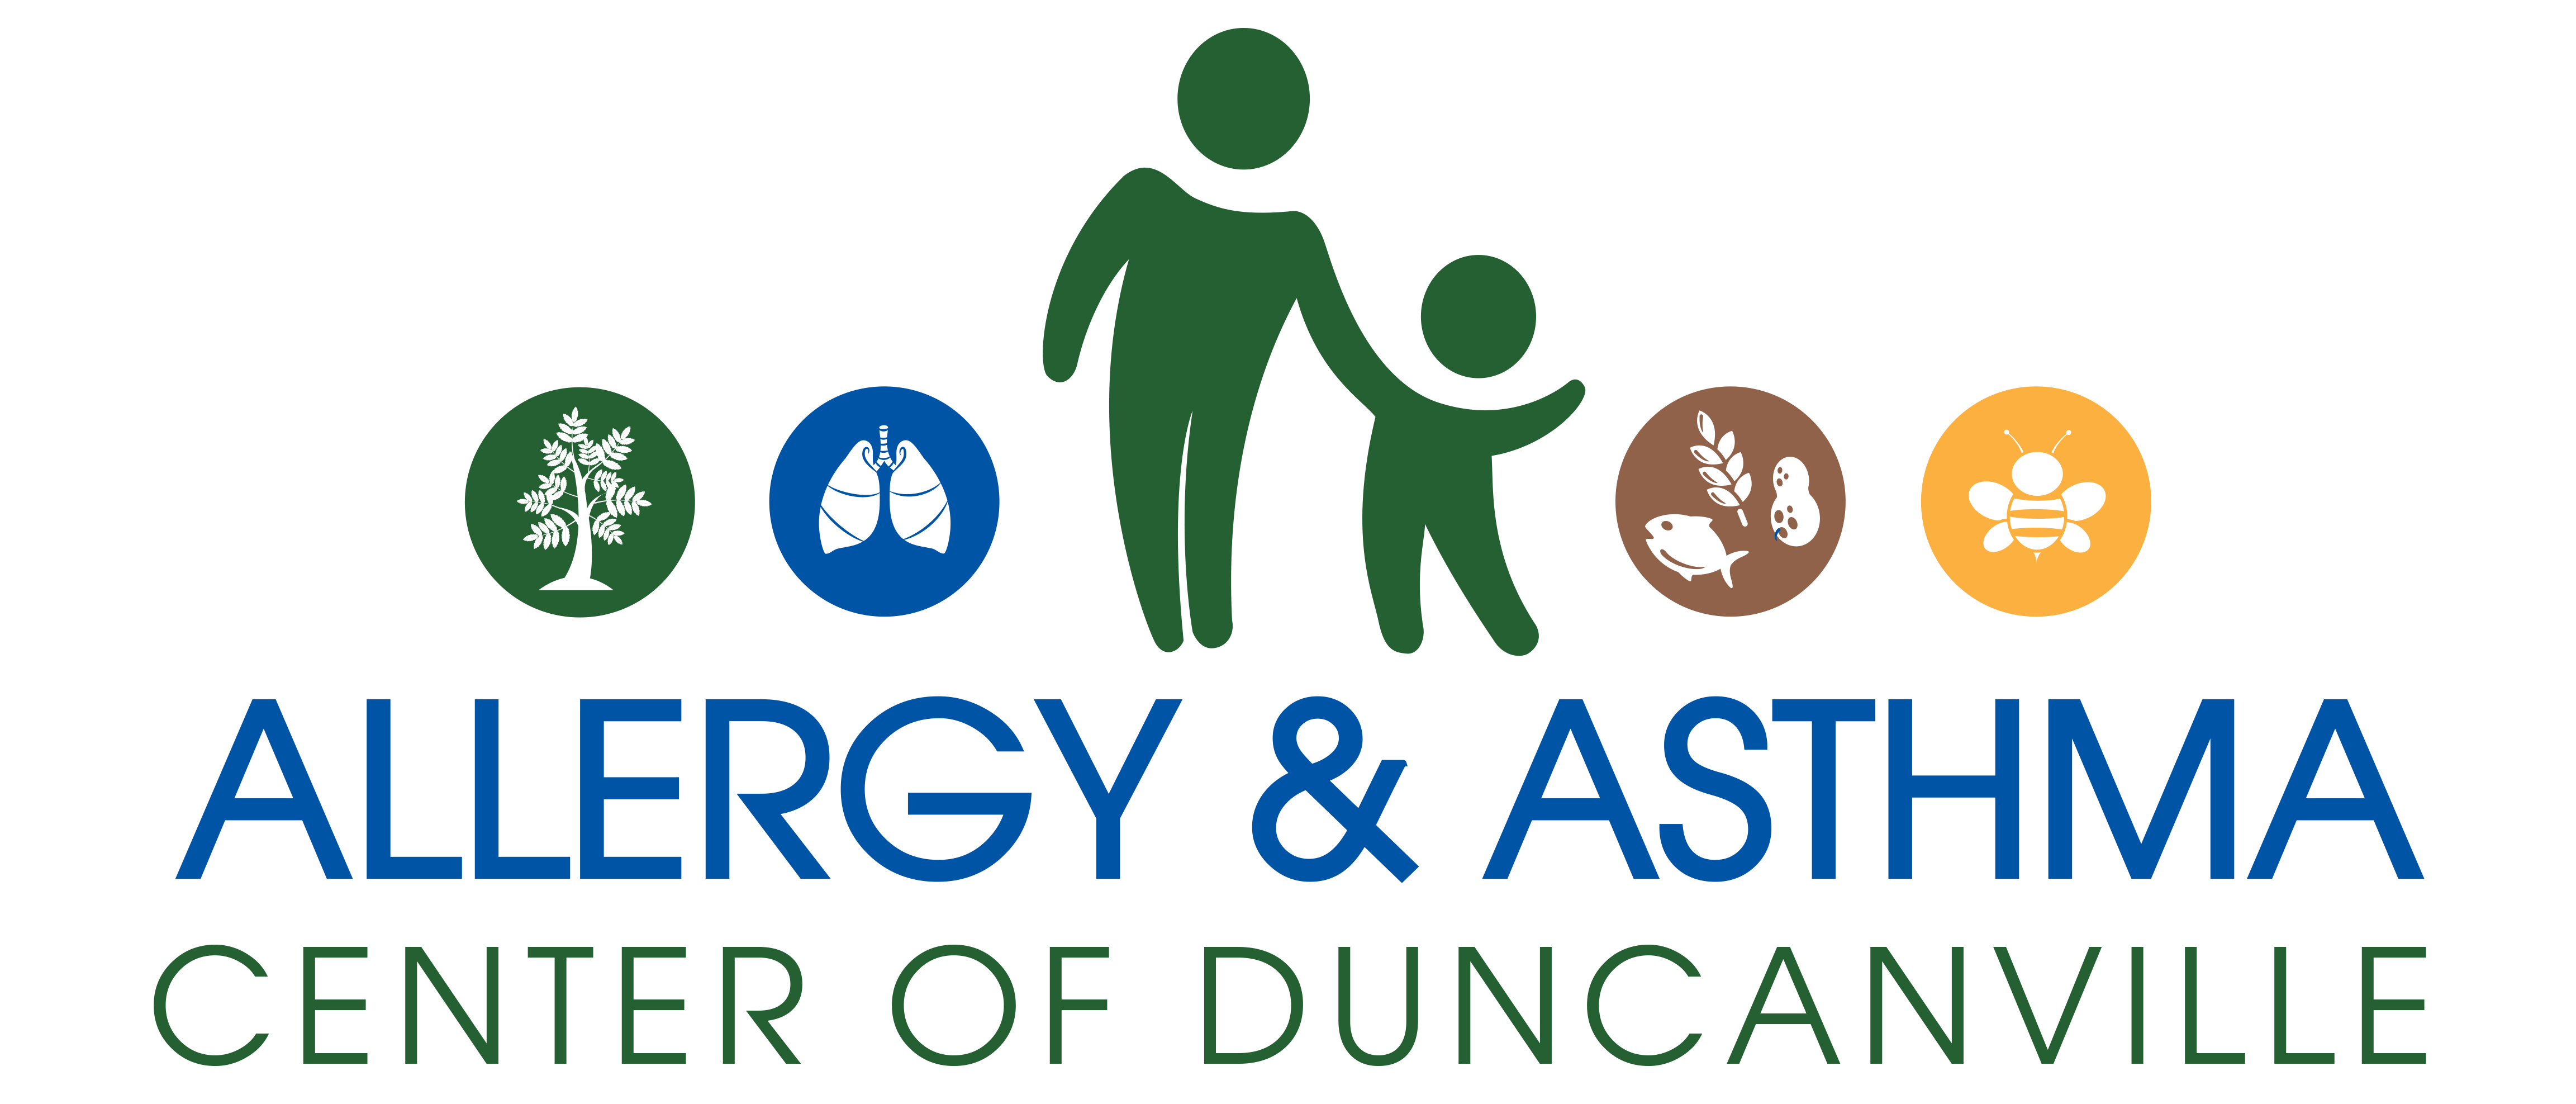 Allergy and Asthma Center of Duncanville